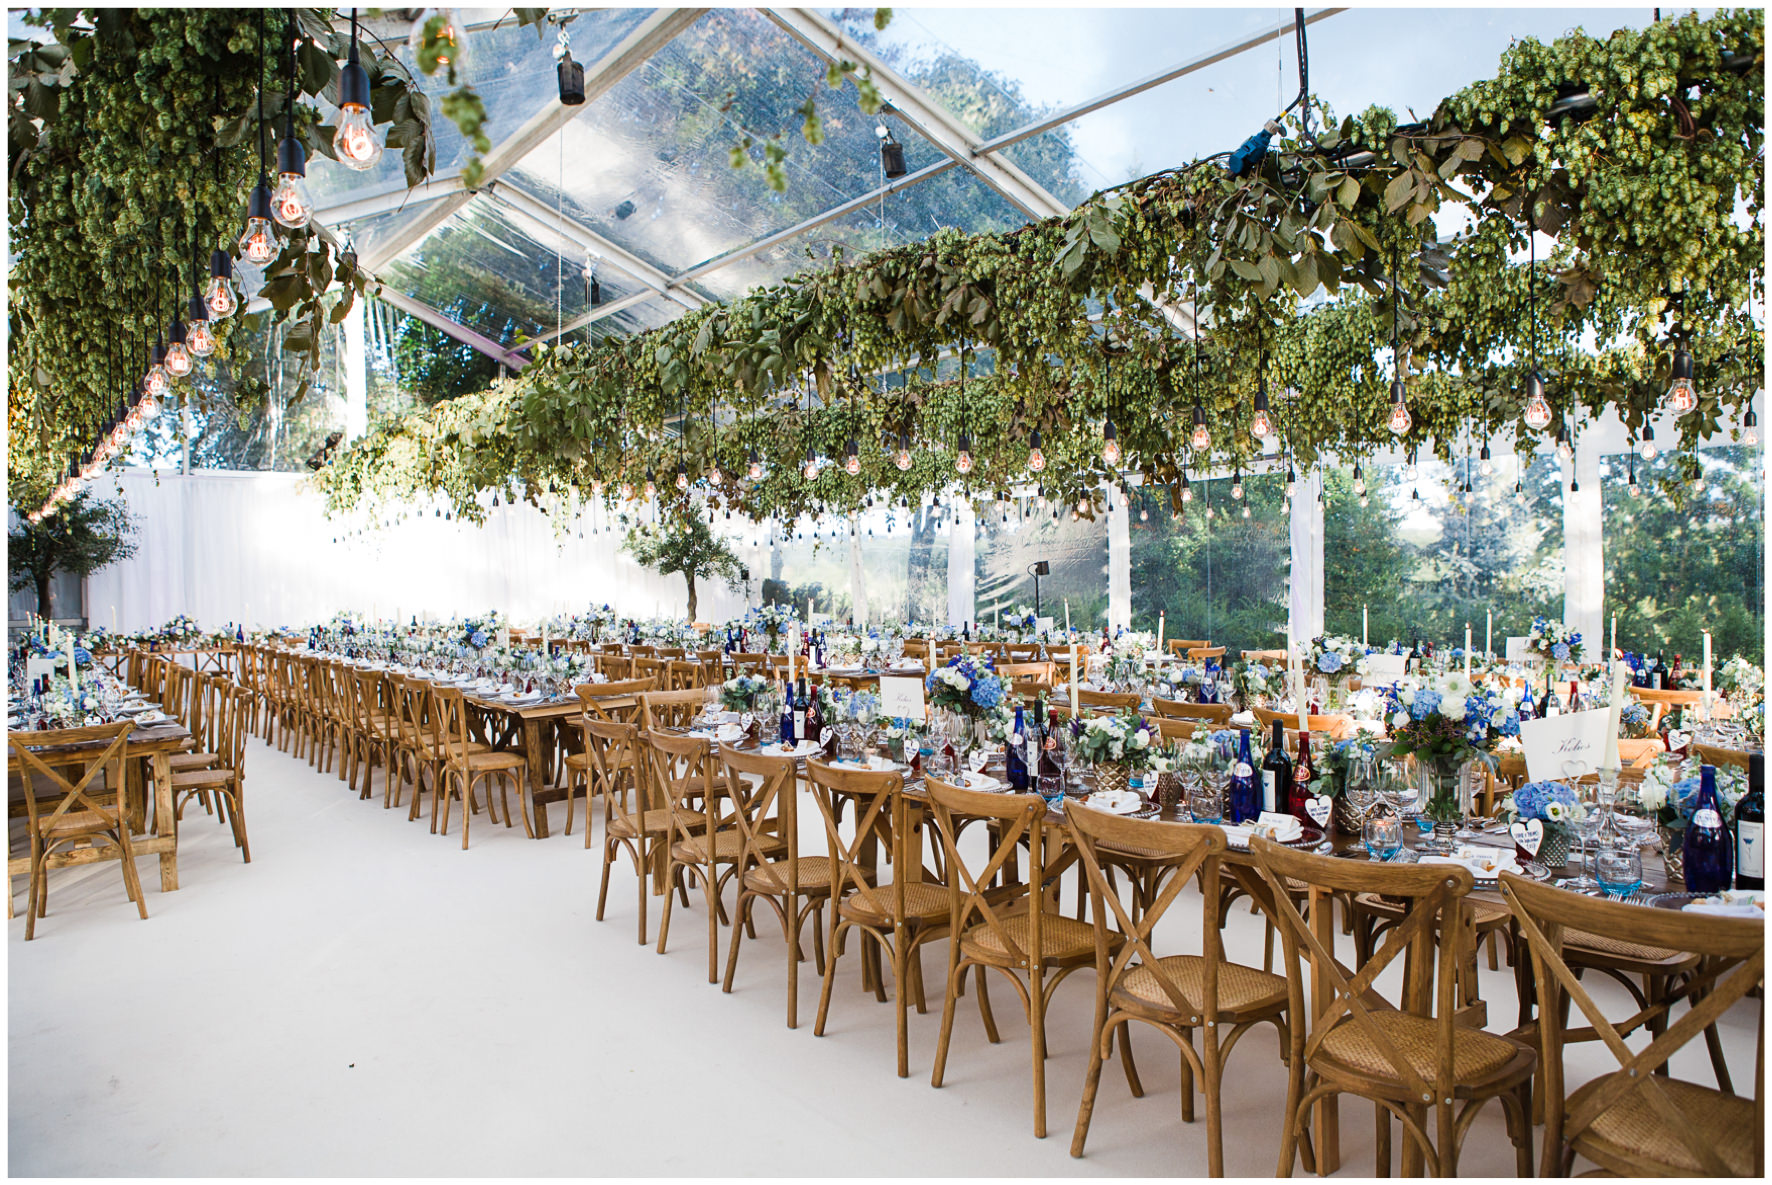 Lucy Davenport Photography, home wedding, marquee wedding, hanging hops, Edison bulb lighting, long tables, wedding breakfast, clear marquee